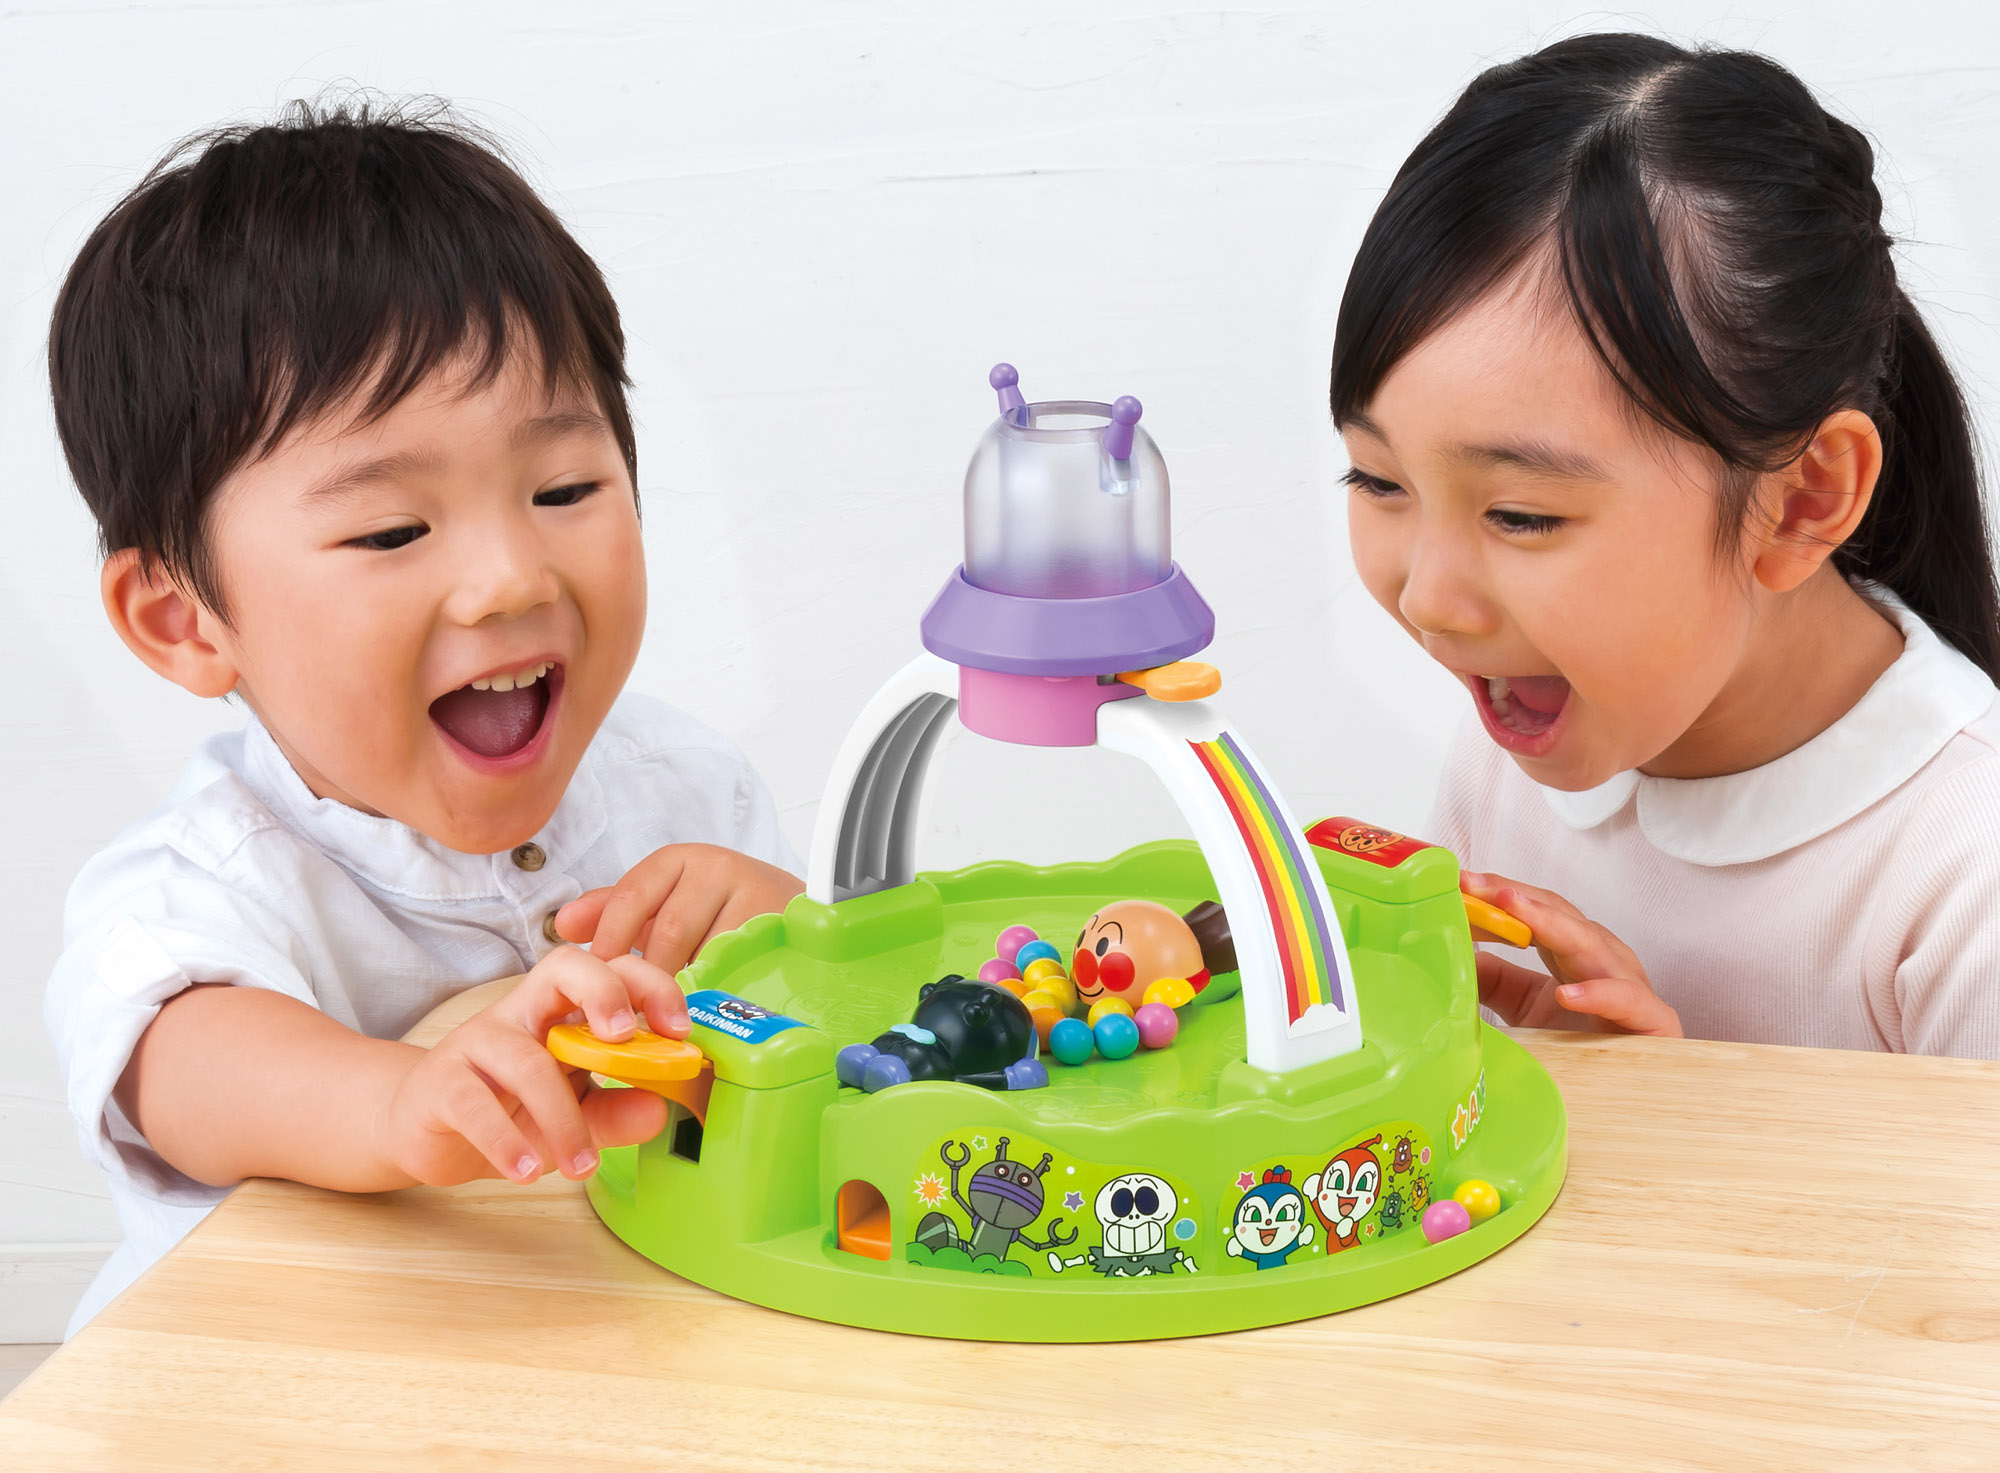 http://www.agatsuma.co.jp/product_test/new_goods/image/anpanman/4971404314900_2_l.jpg